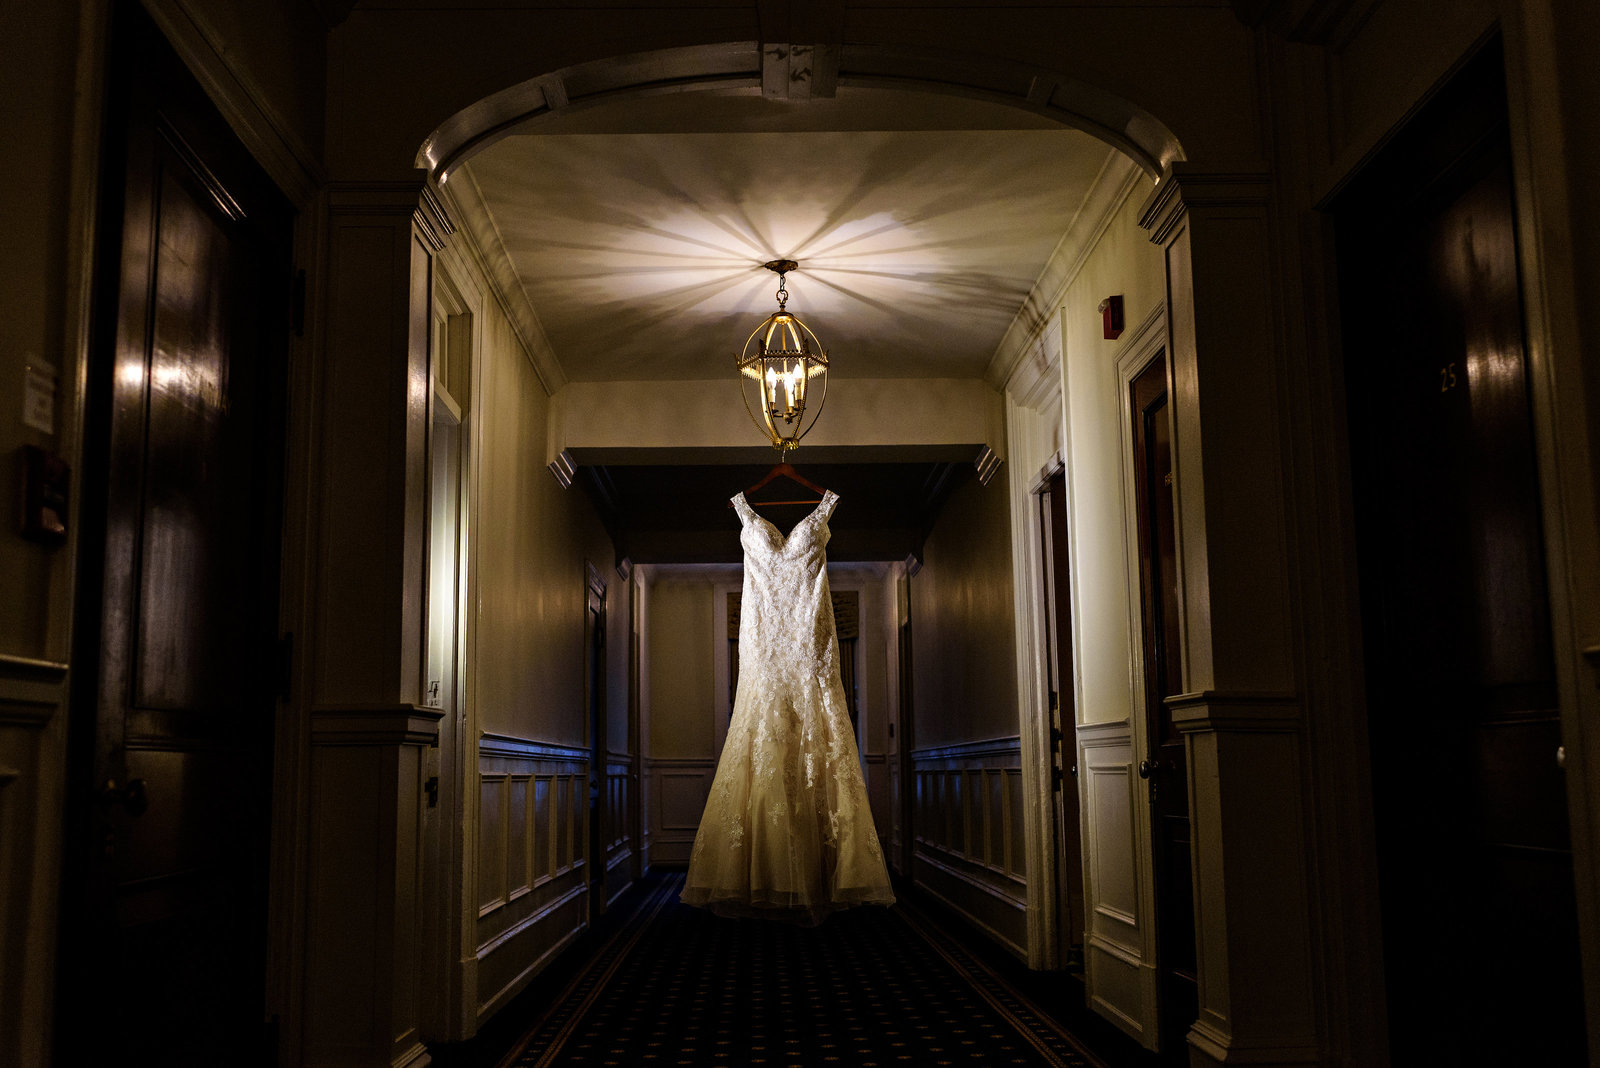 A lace wedding dress hangs in the hallway of the members suites at the racquet club of philadelphia.